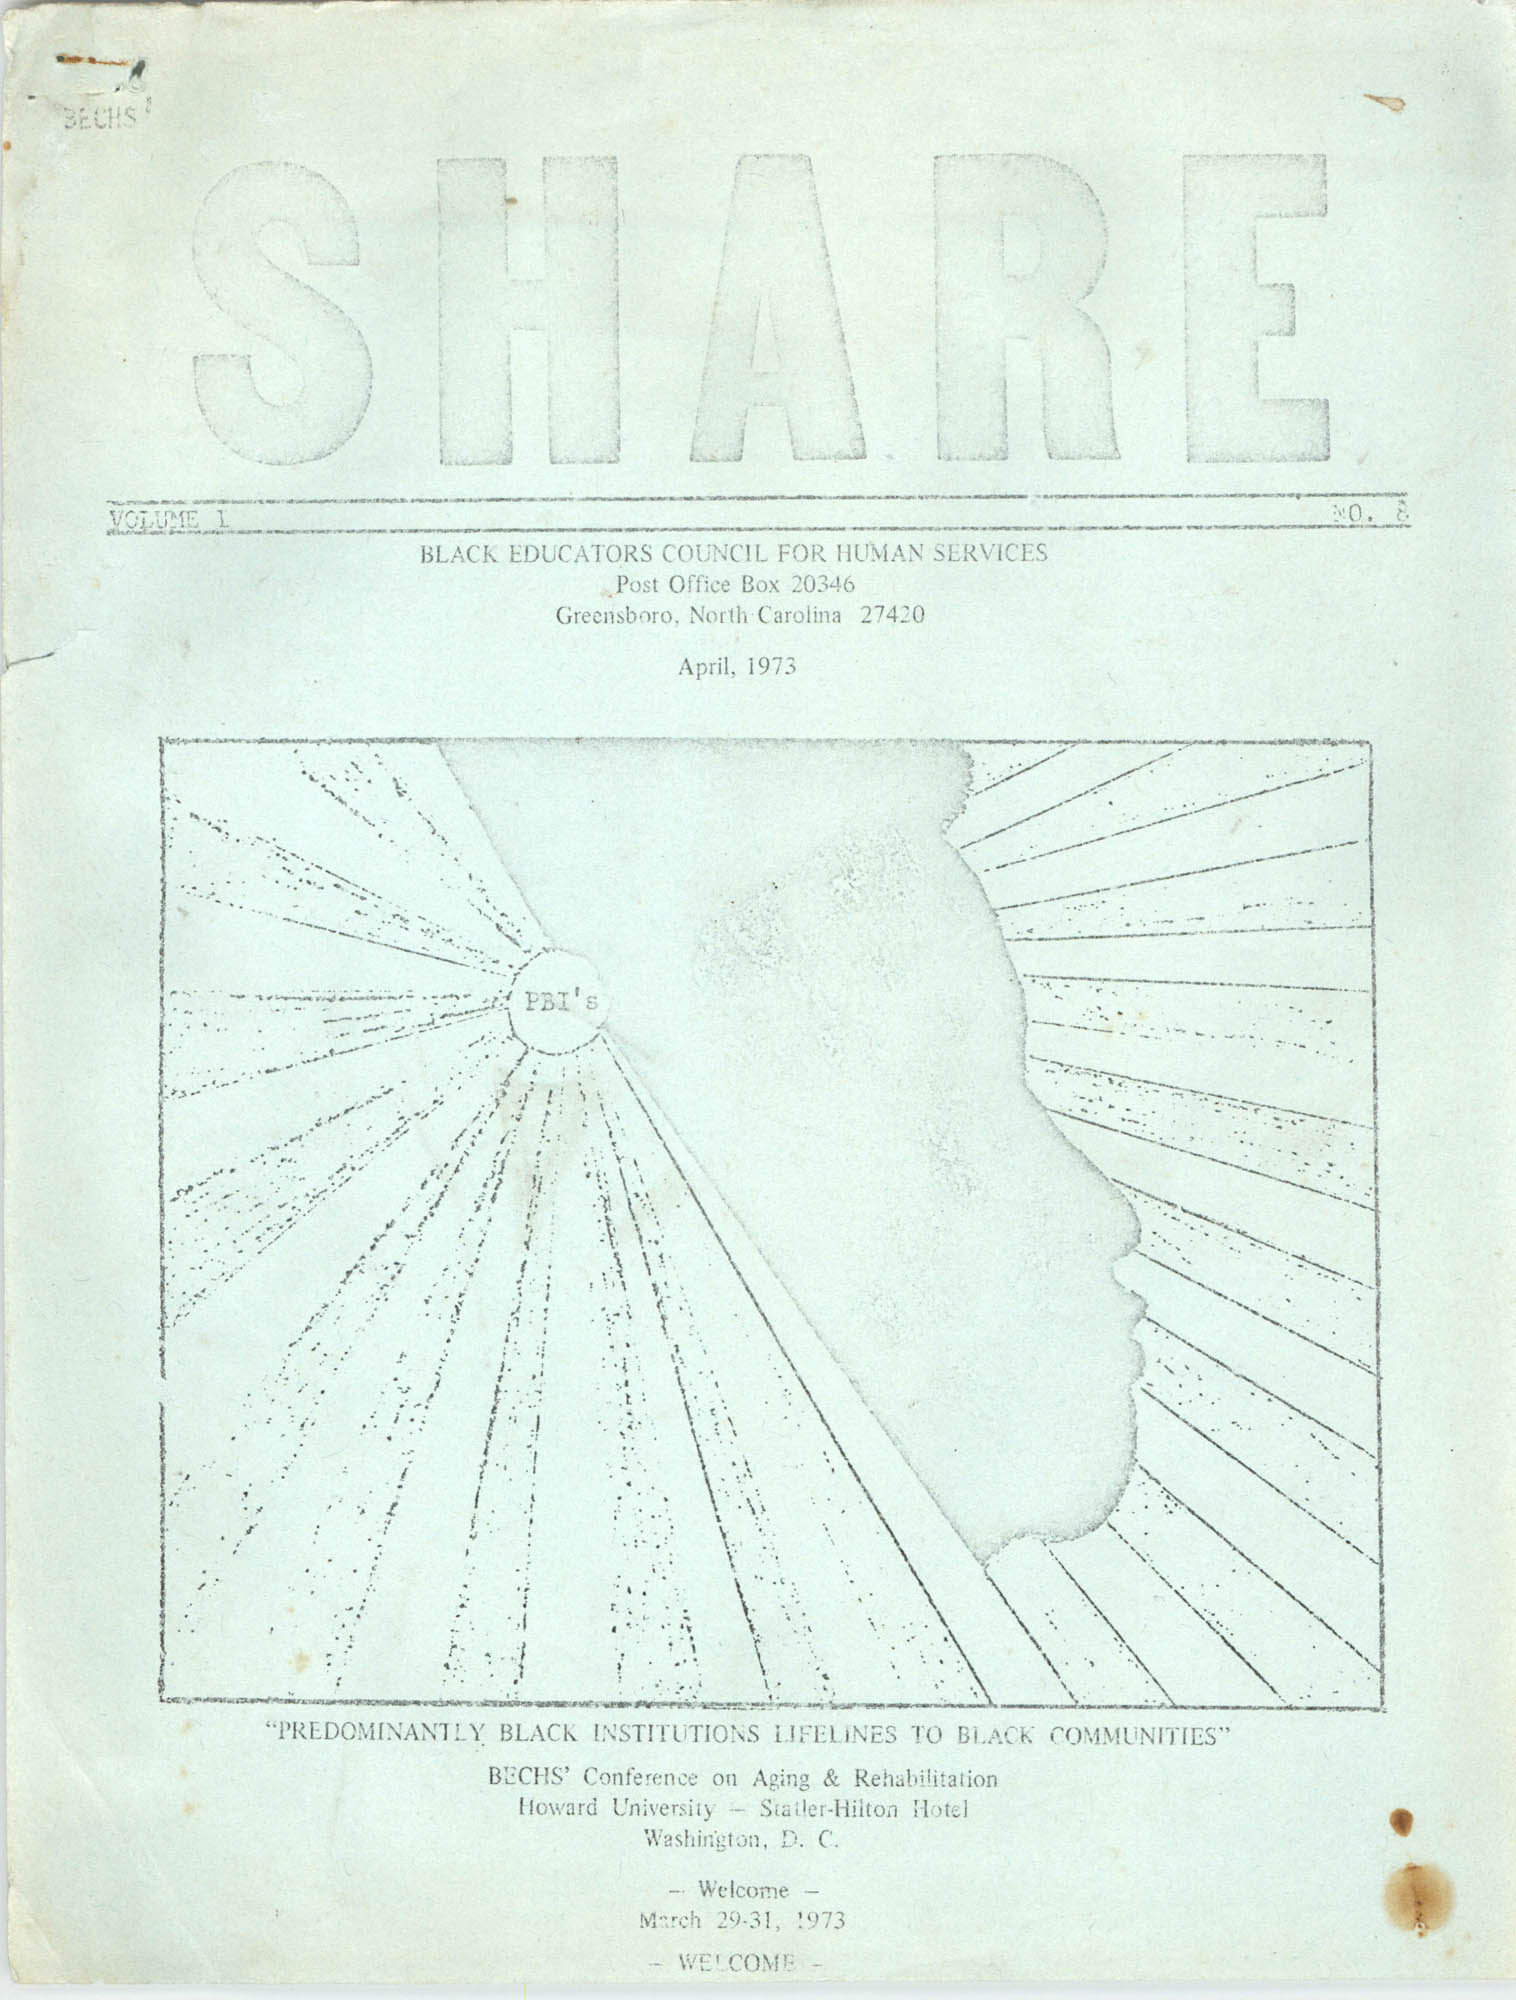 SHARE, Volume I, Number 8, April 1973, Cover Exterior